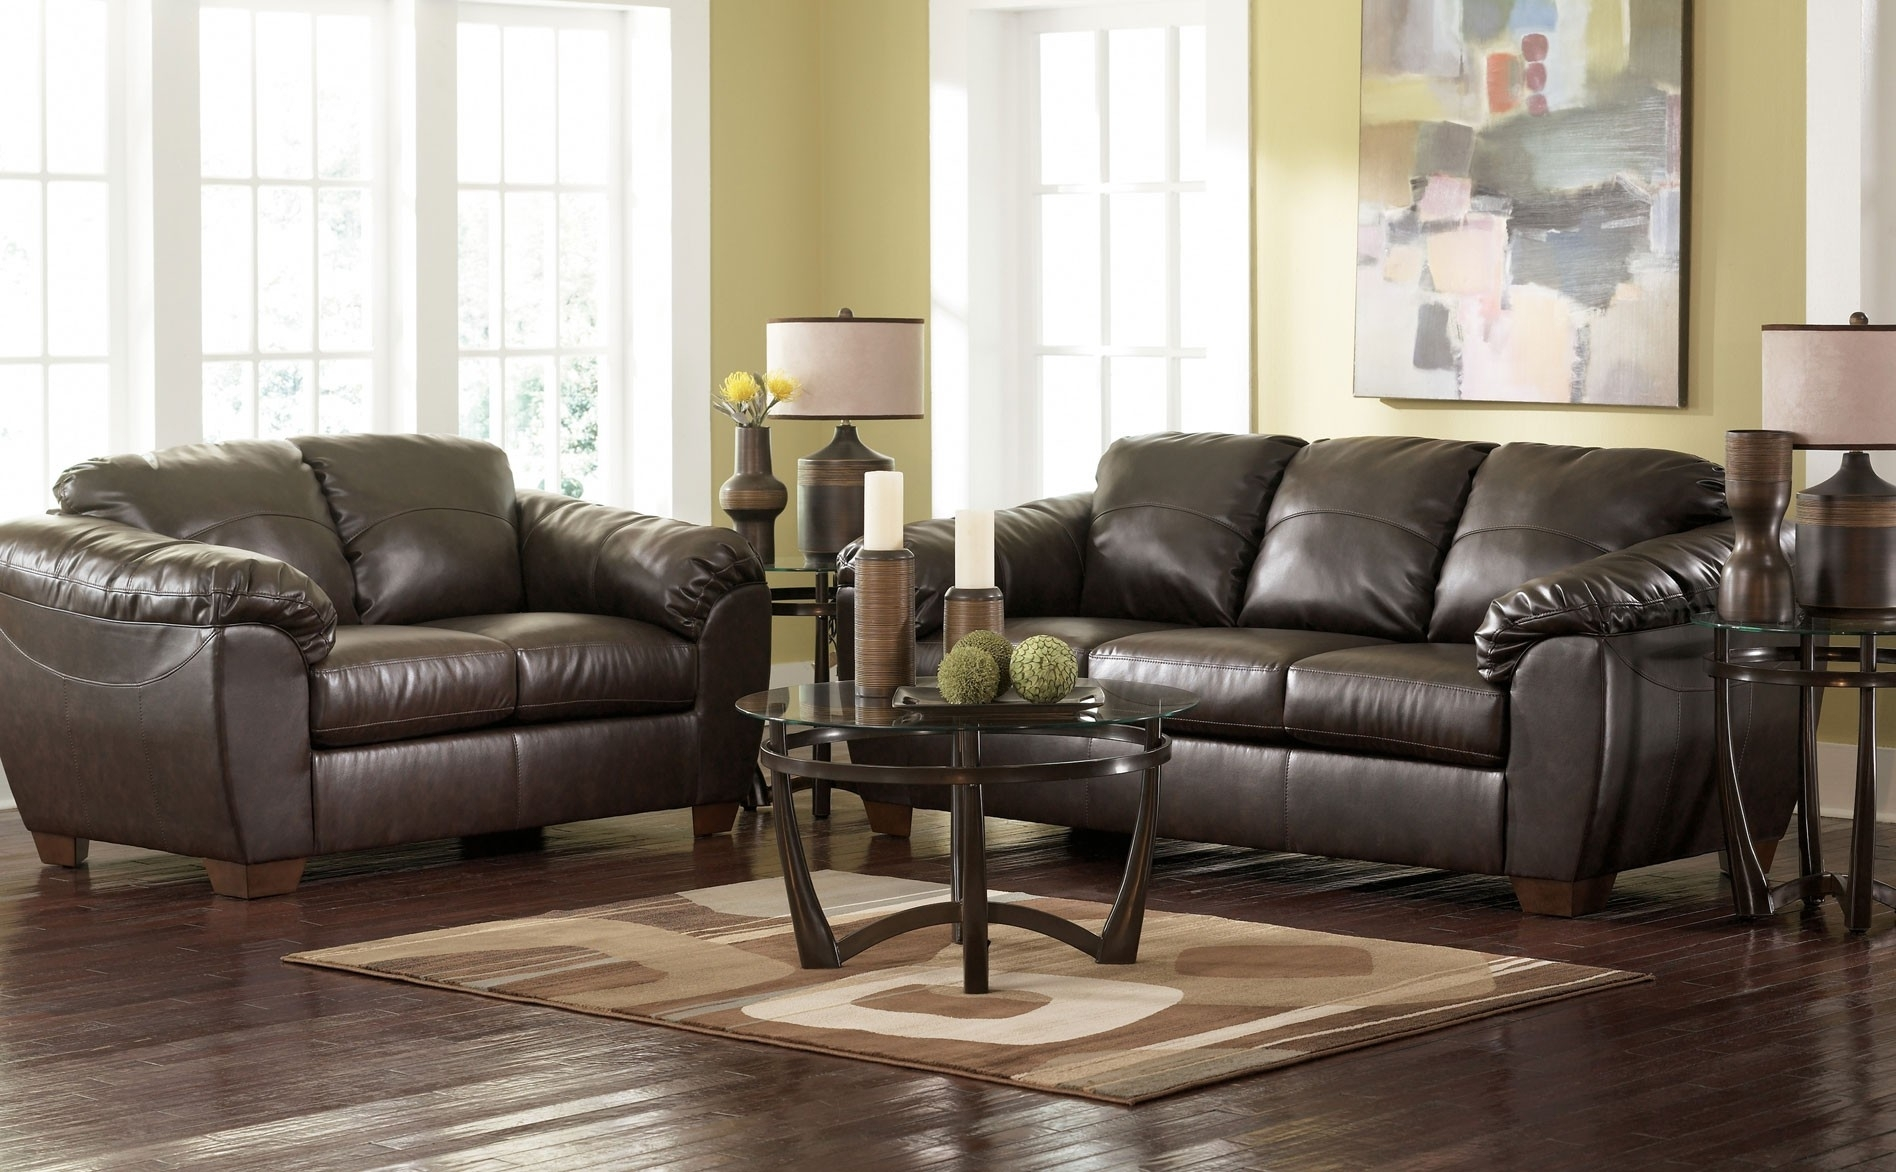 Furniture: Discount Sofas | Inexpensive Couches | Cheap Sectionals with Sears Sofas (Image 5 of 10)